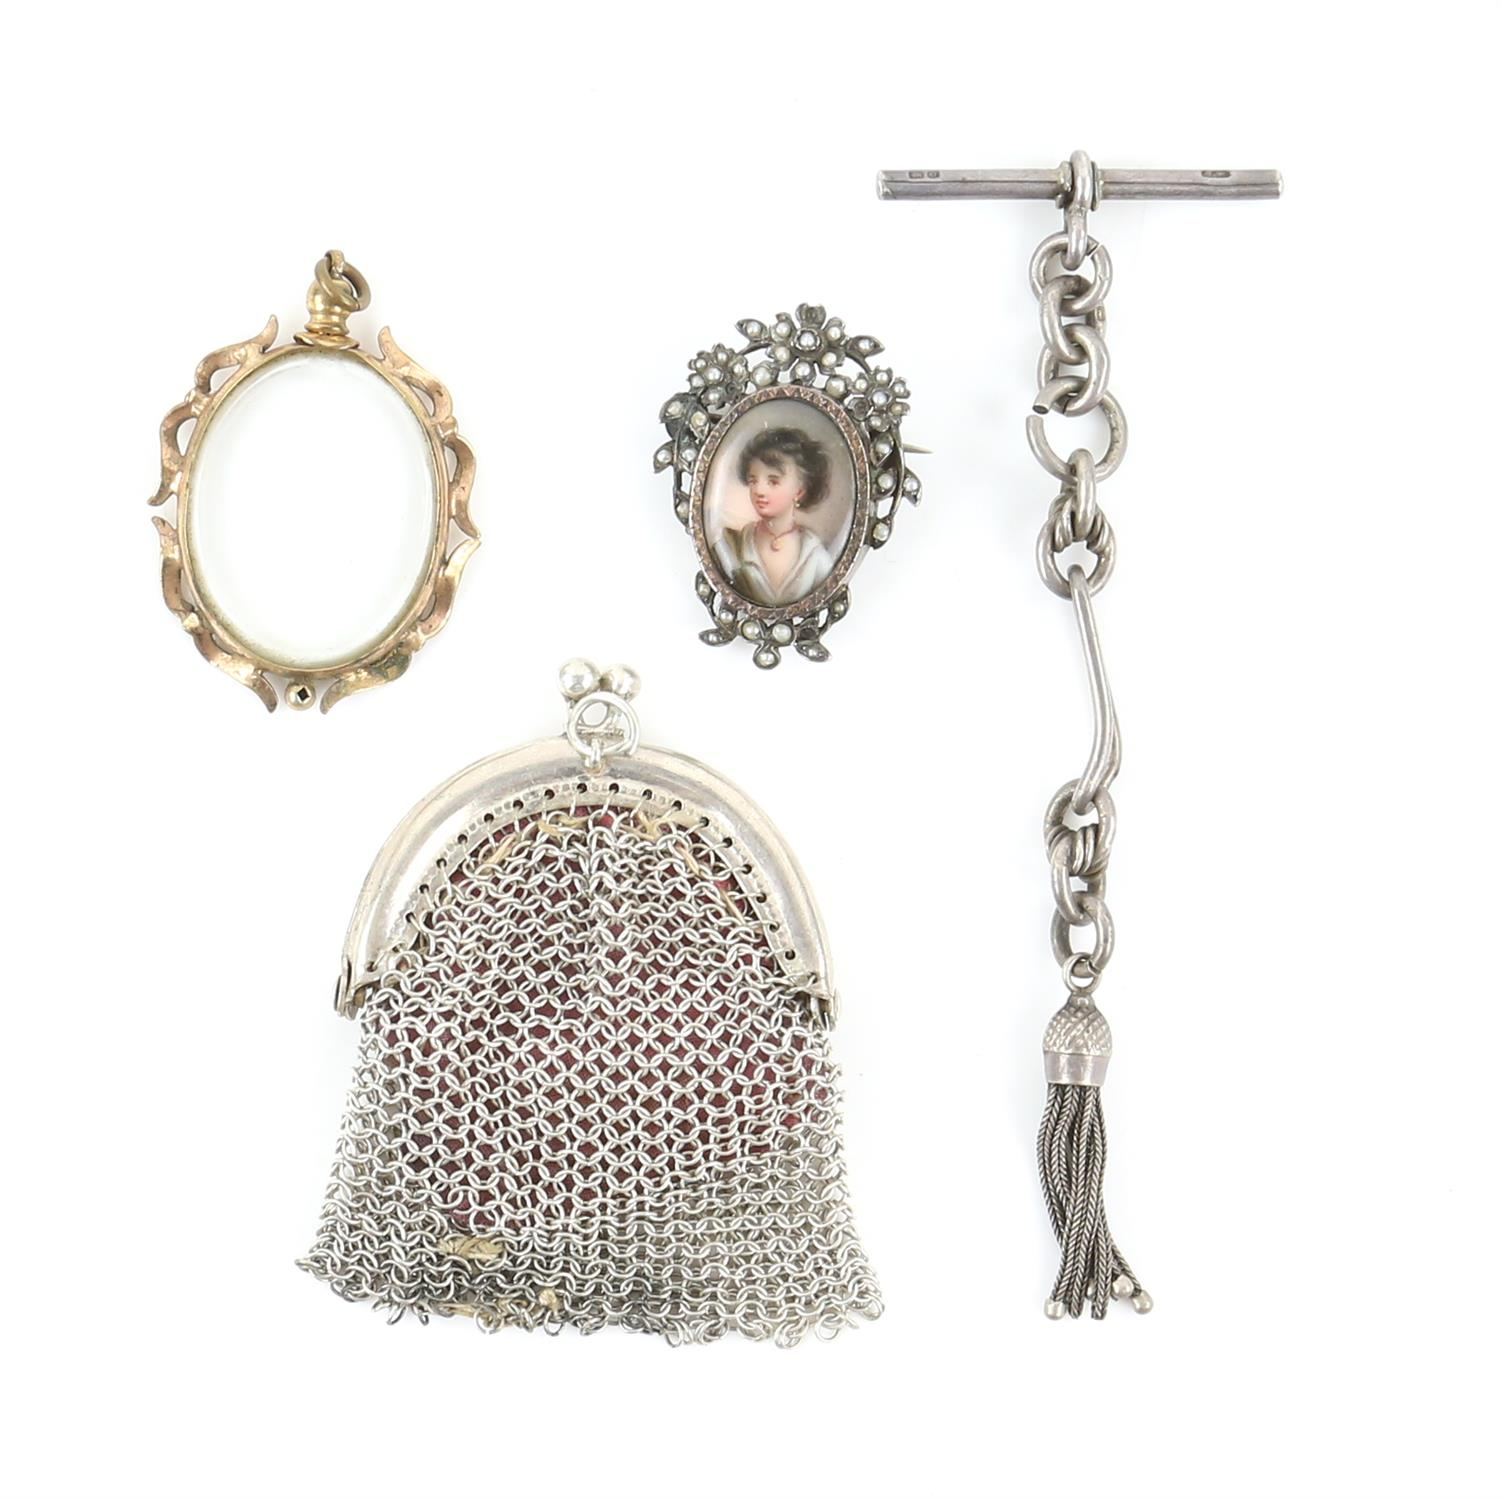 Silver and costume jewellery, including a Scottish agate dirk brooch, an enamel painted portrait